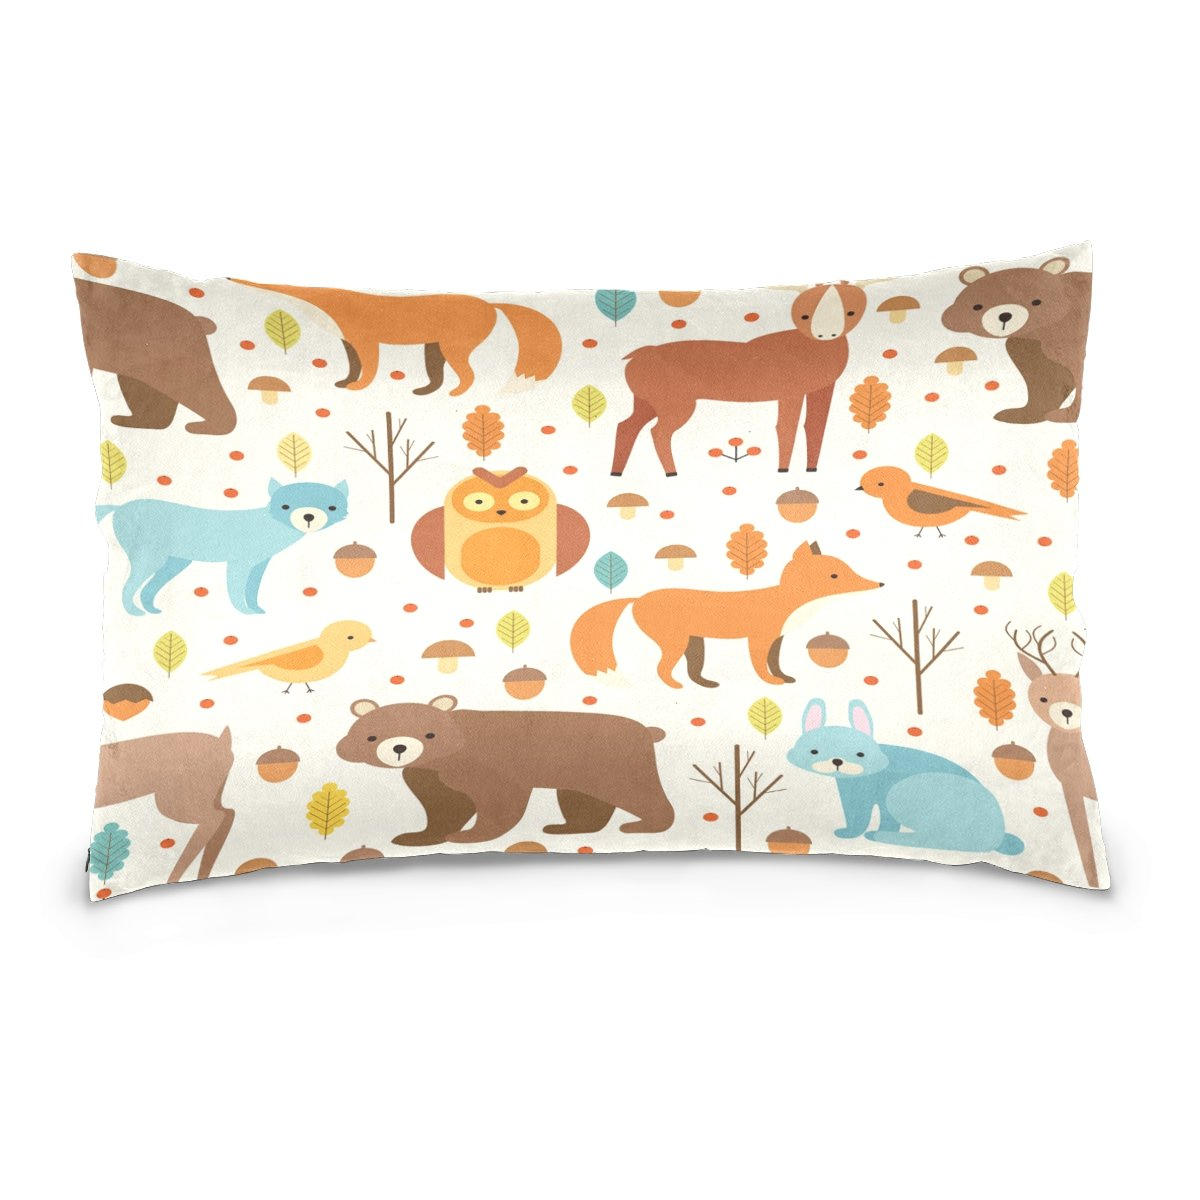 Pillow Covers Pillow Protectors Bed Bug Dust Mite Resistant Standard Pillow Cases Cotton Sateen Allergy Proof Soft Quality Covers with Seamless Cute Cartoon Animals for Bedding